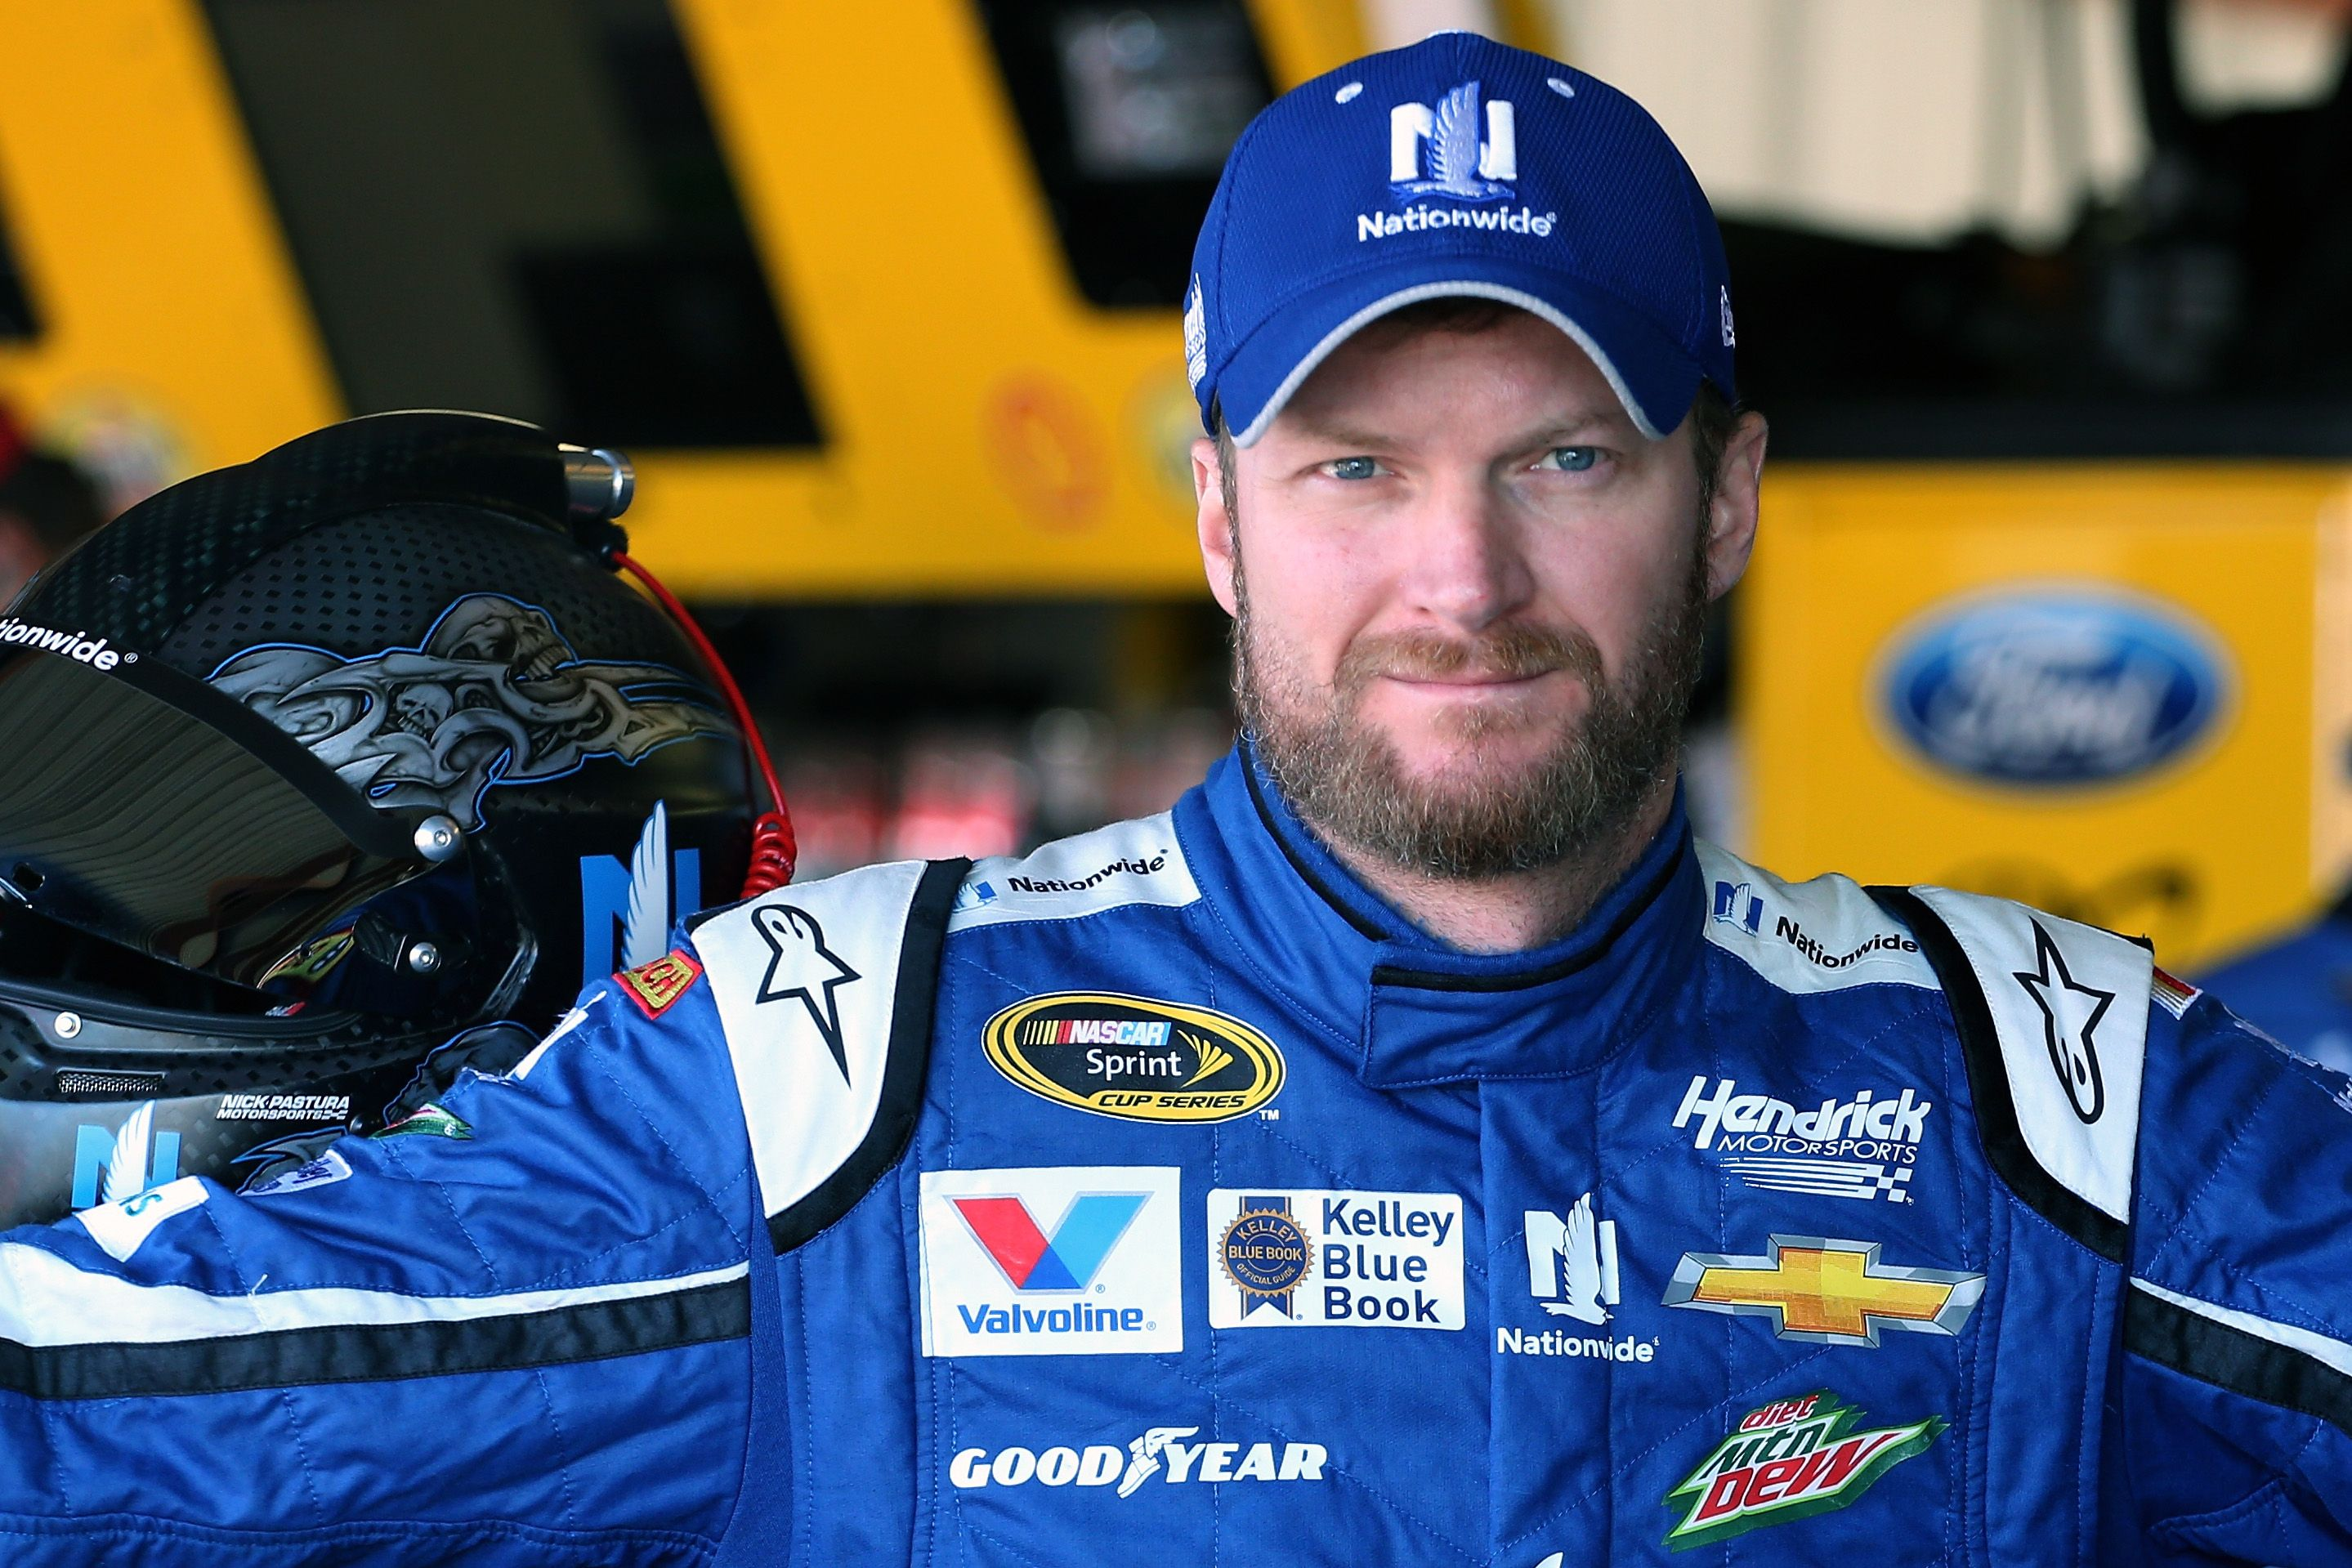 NASCAR's Dale Earnhardt Jr. and His Family Were Just Involved in a Plane Crash